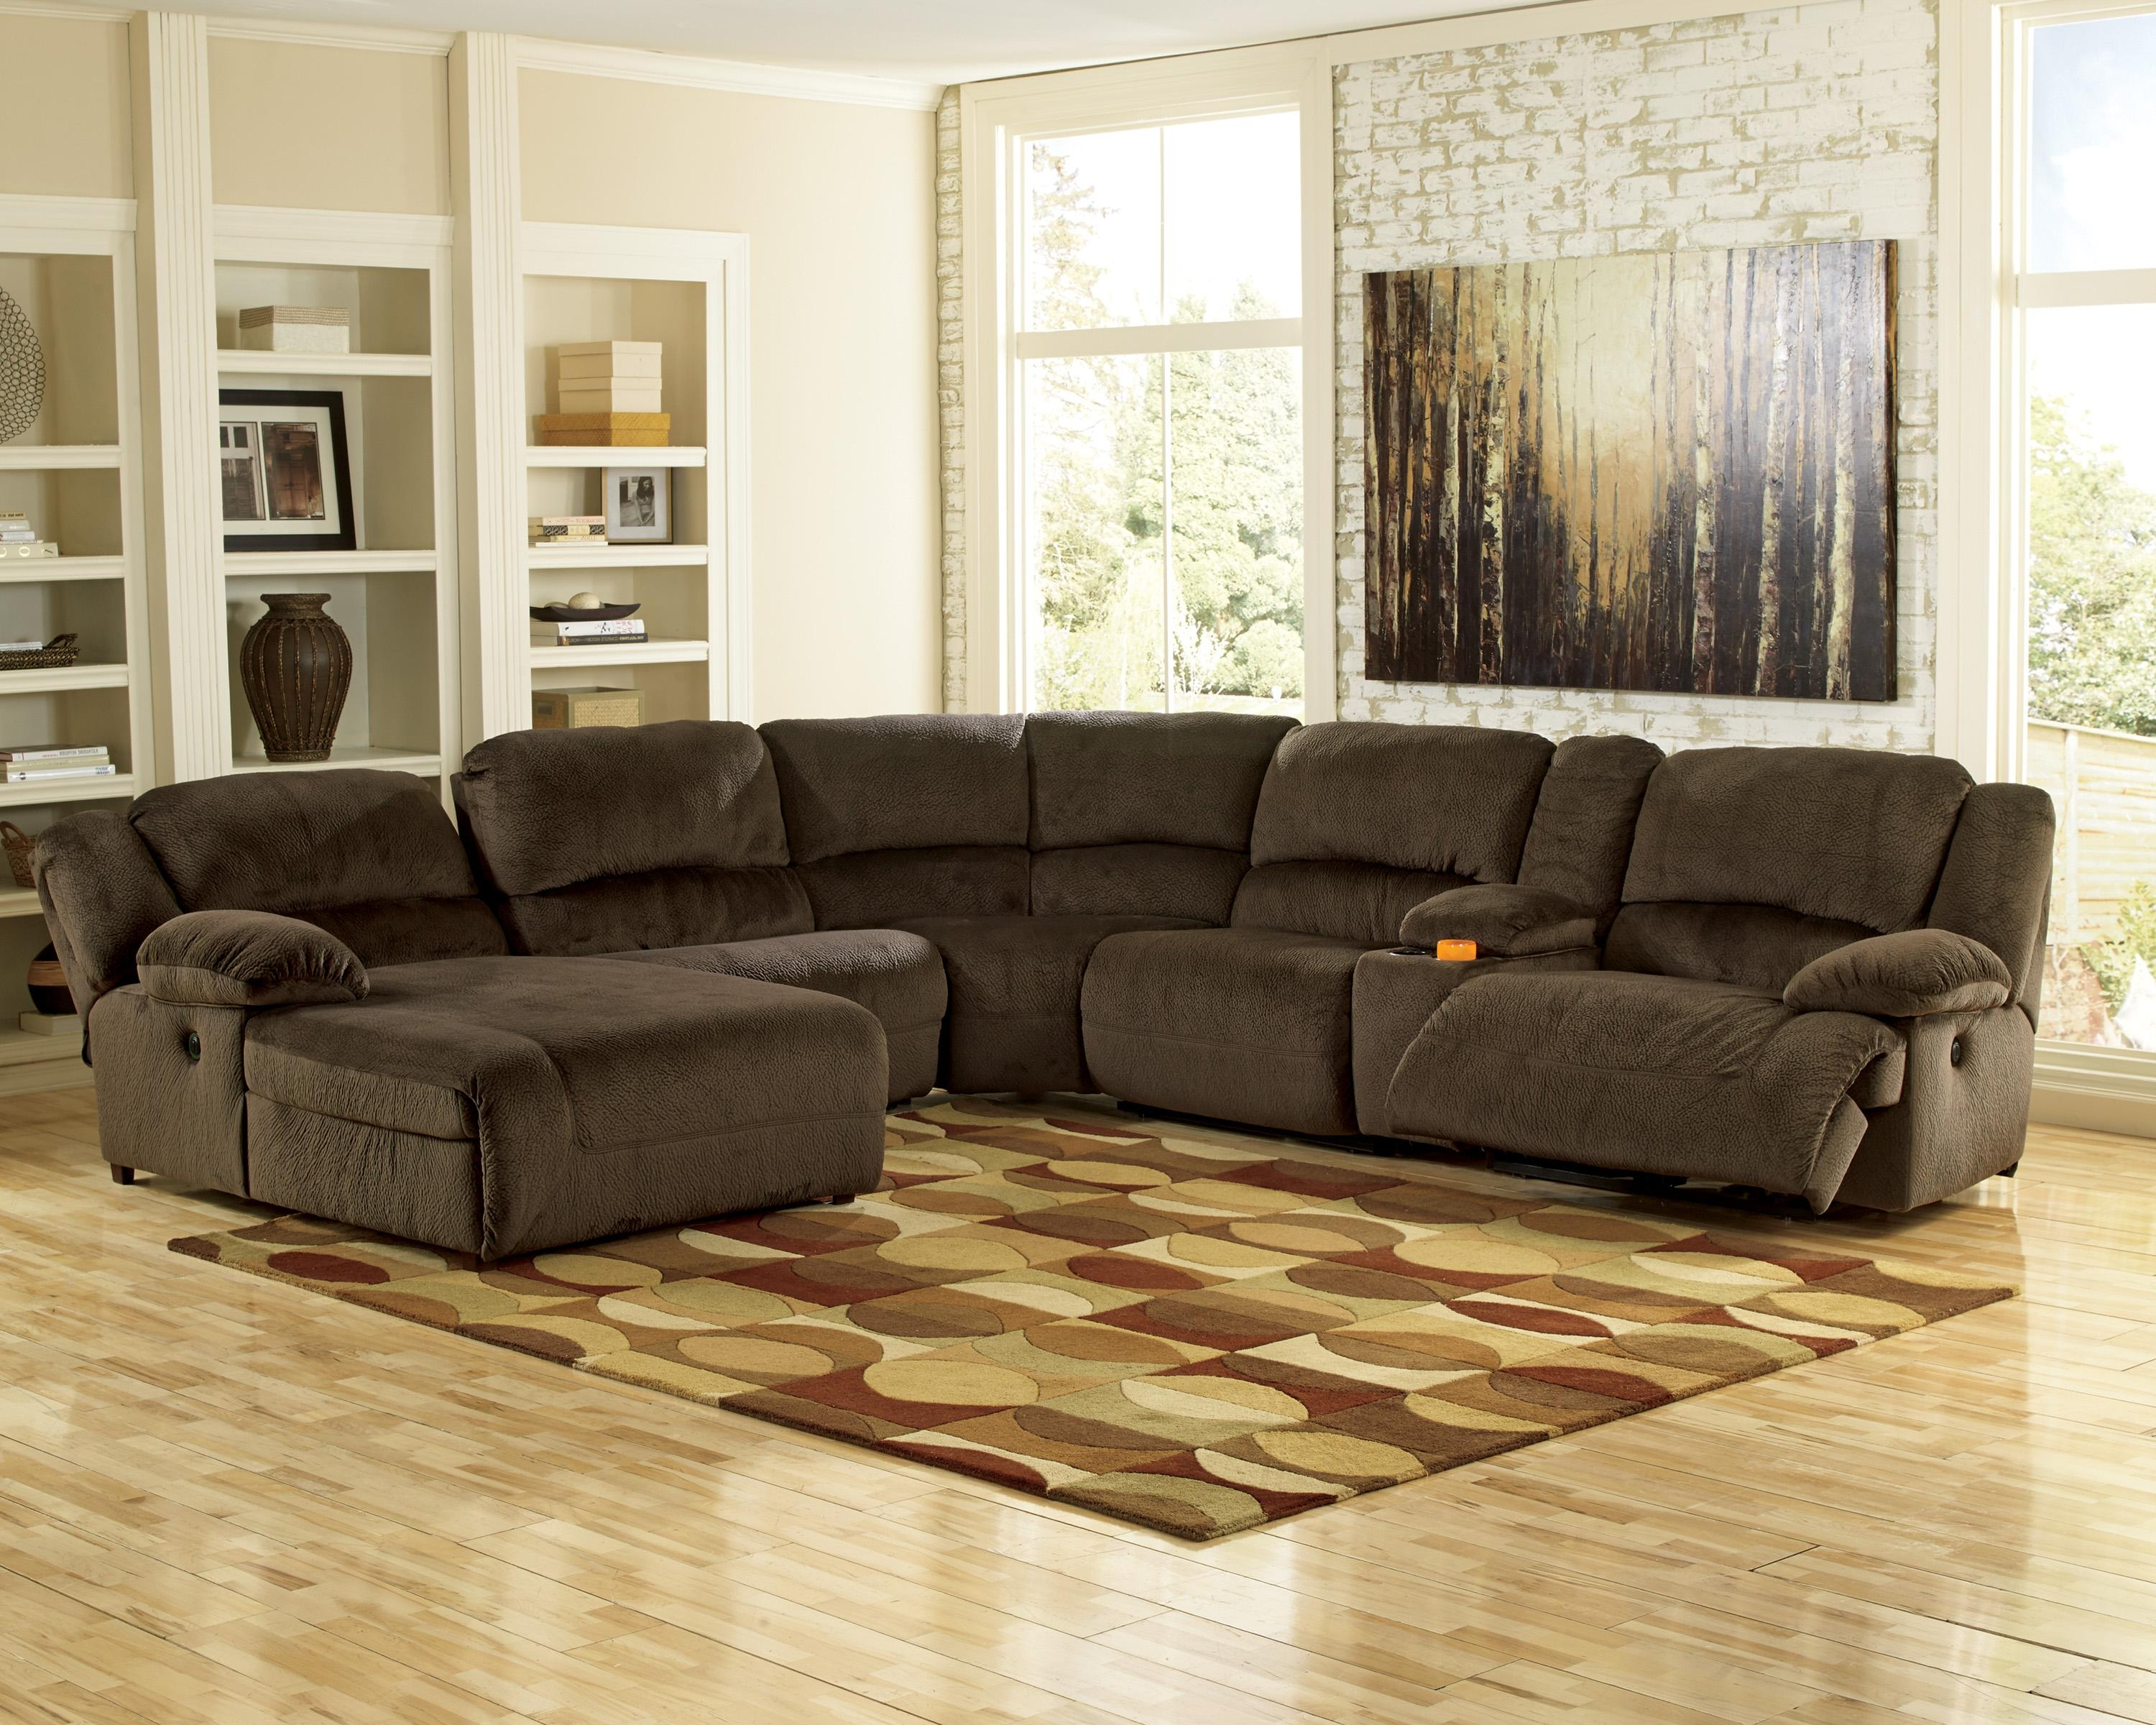 Ashley Furniture Sectional Couches (View 5 of 20)